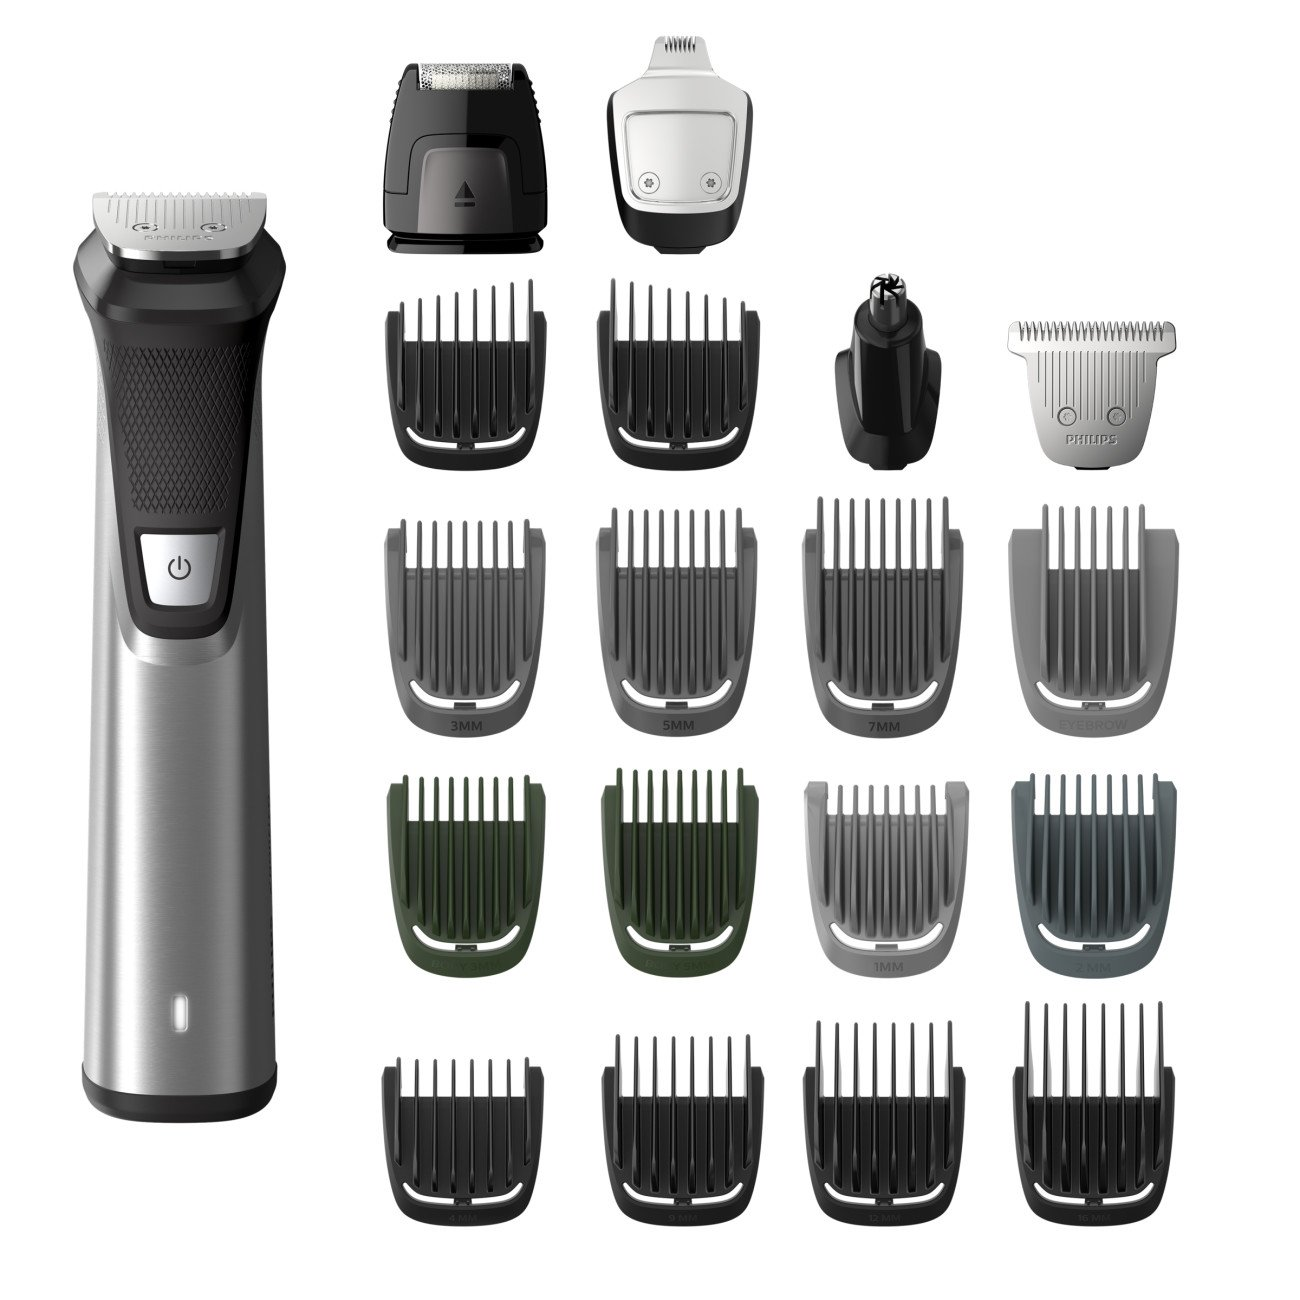 Philips Norelco Multi Groomer MG7750/49-23 piece, beard, body, face, nose, and ear hair trimmer, shaver, and clipper by Philips Norelco